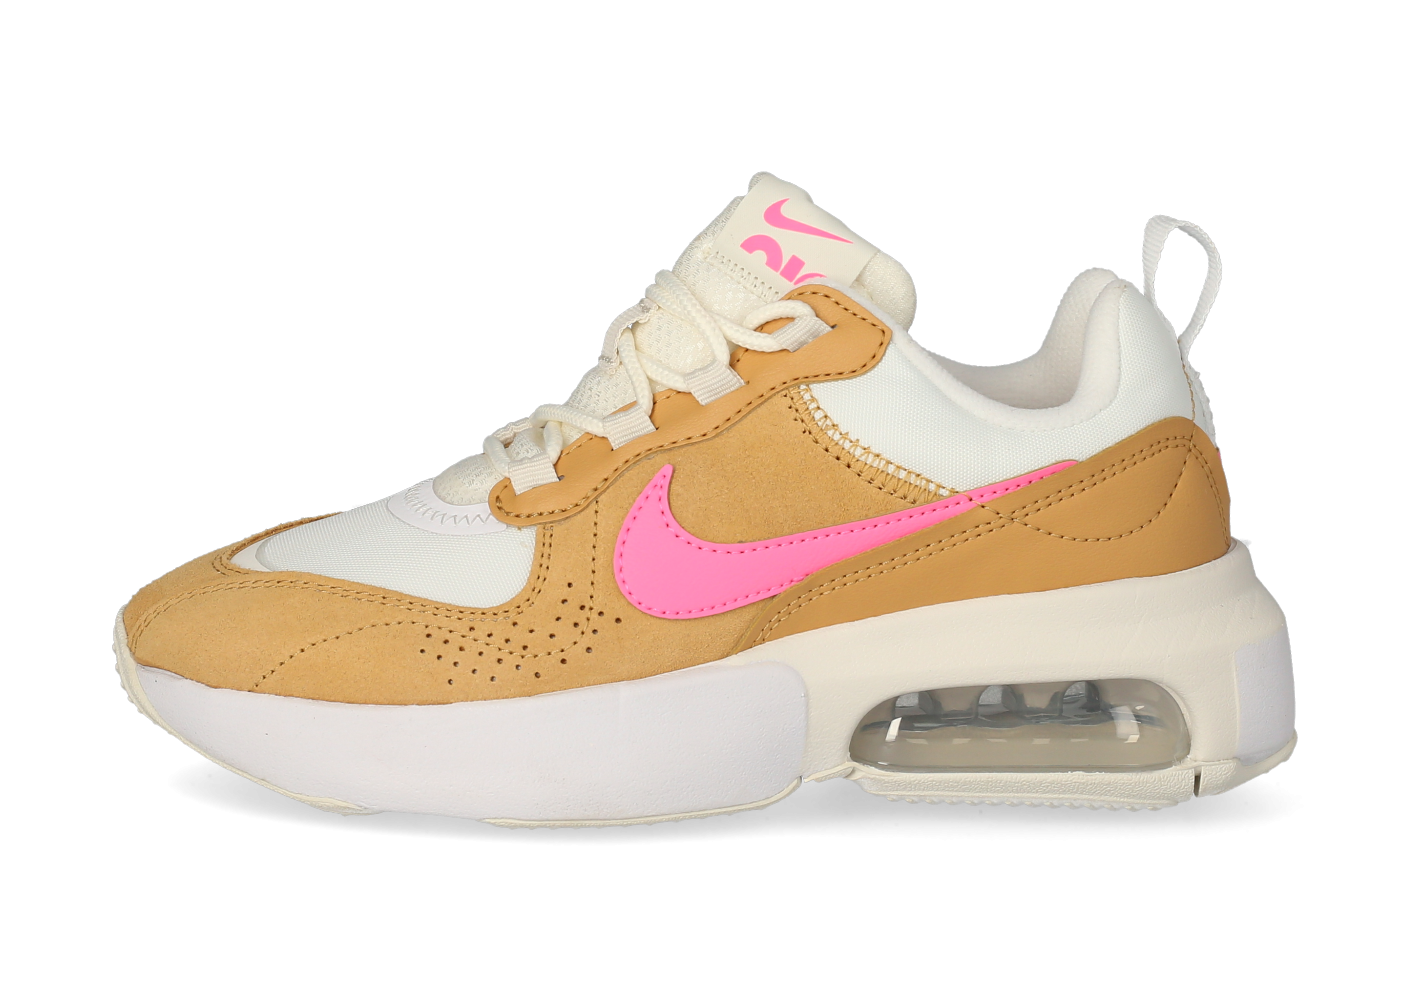 Nike Air Max Verona Femme Camel blanche et rose - Chaussures ...